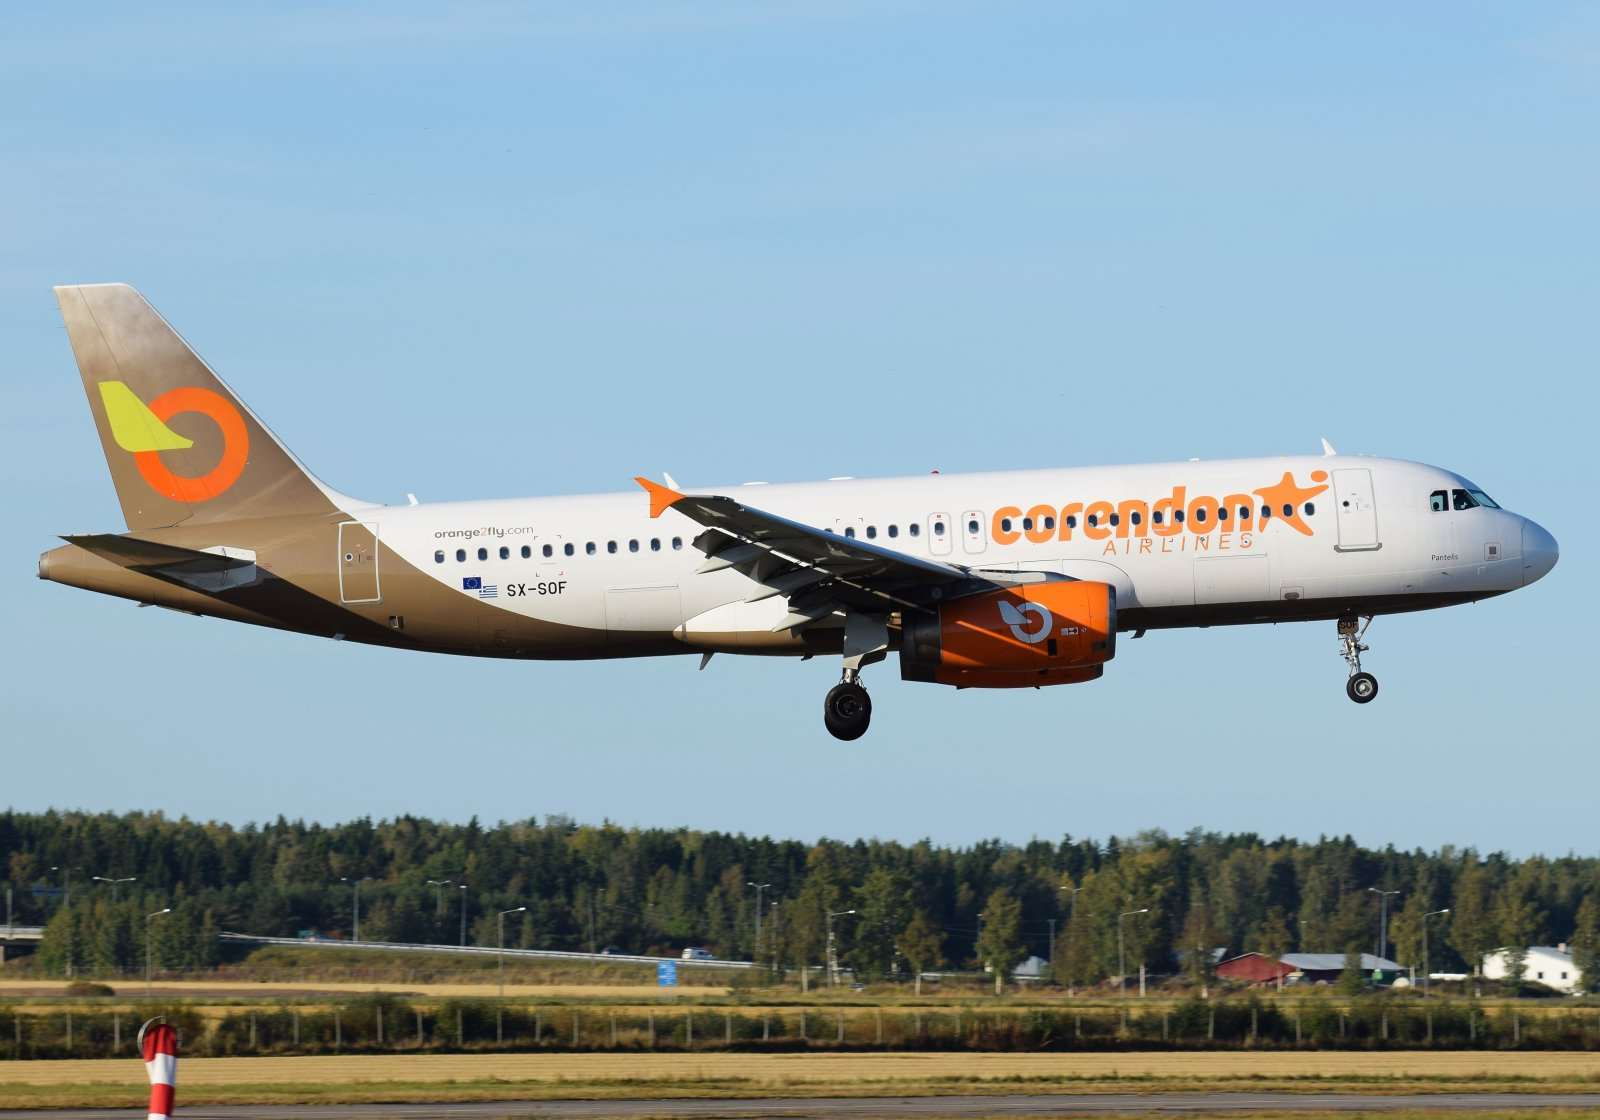 SX-SOF - Airbus A320-232 - Orange2Fly (Corendon Airlines) - 26.9.2019